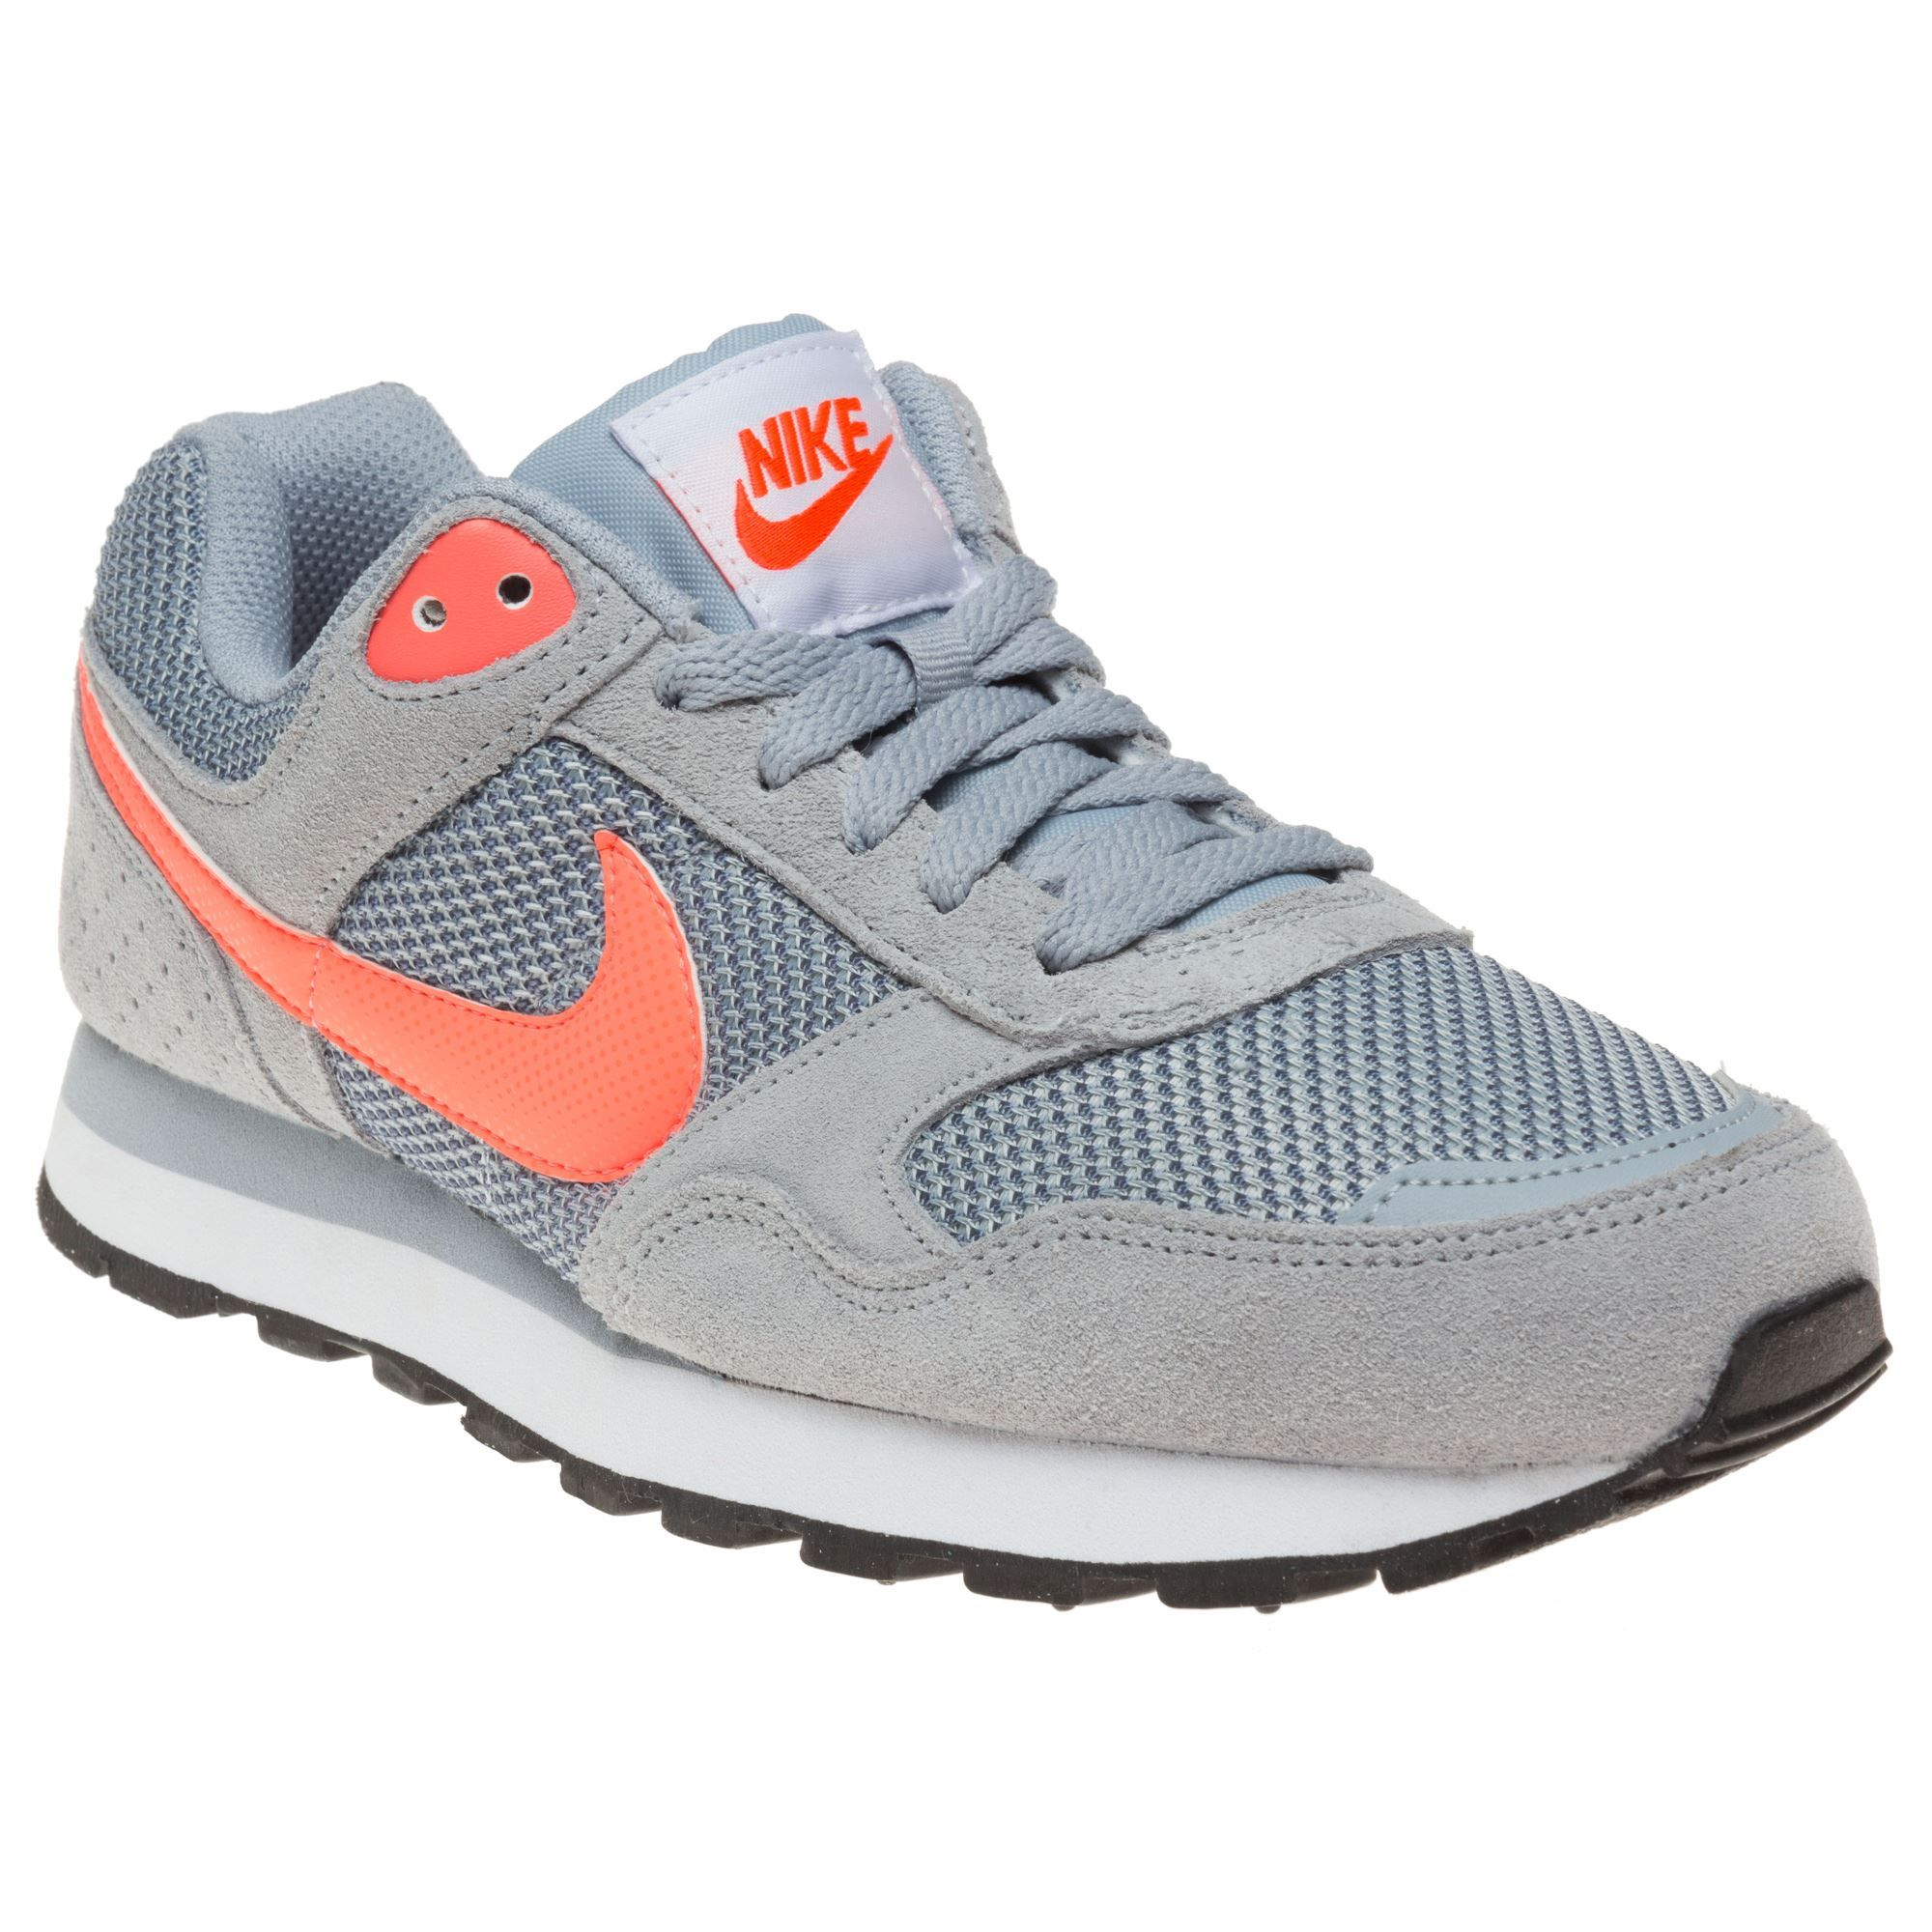 30f803c15516a Nike Md Runner Trainers - Women - SOLETRADER